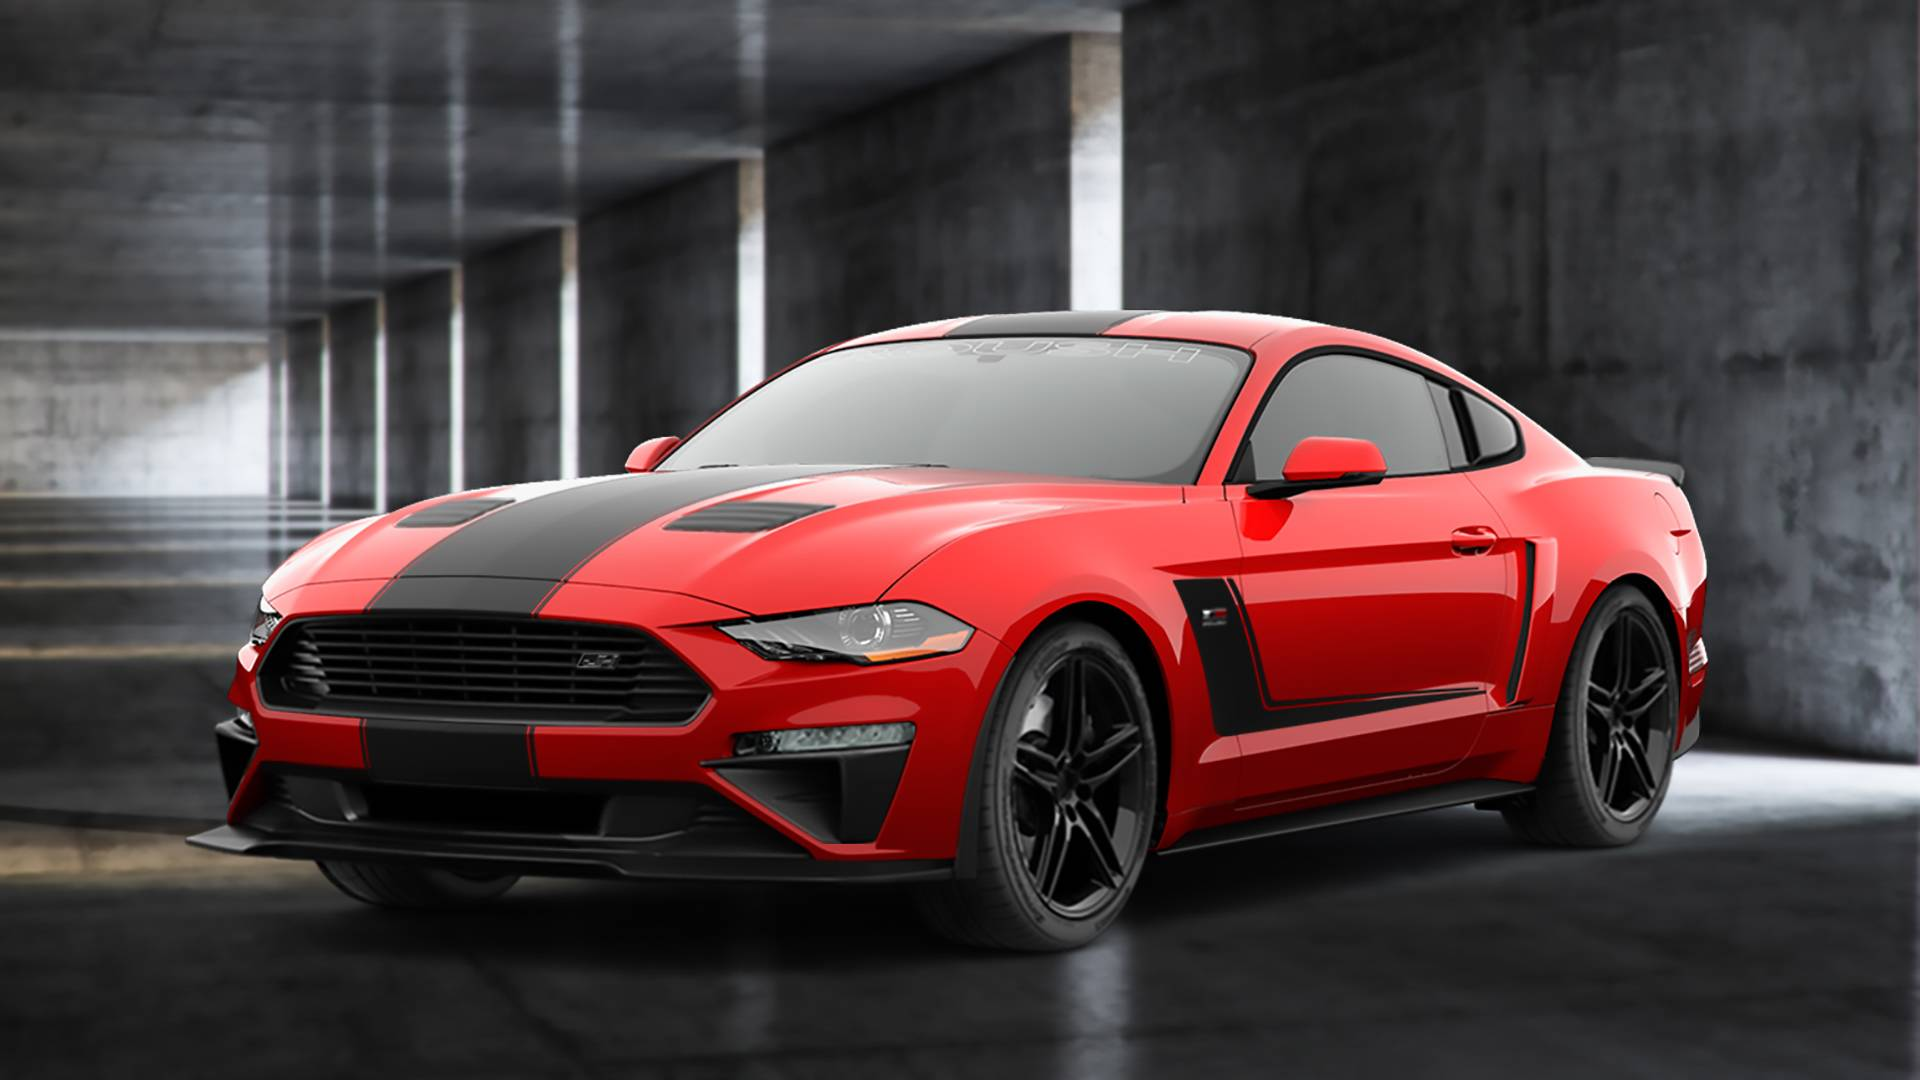 2018 Roush Mustang Price